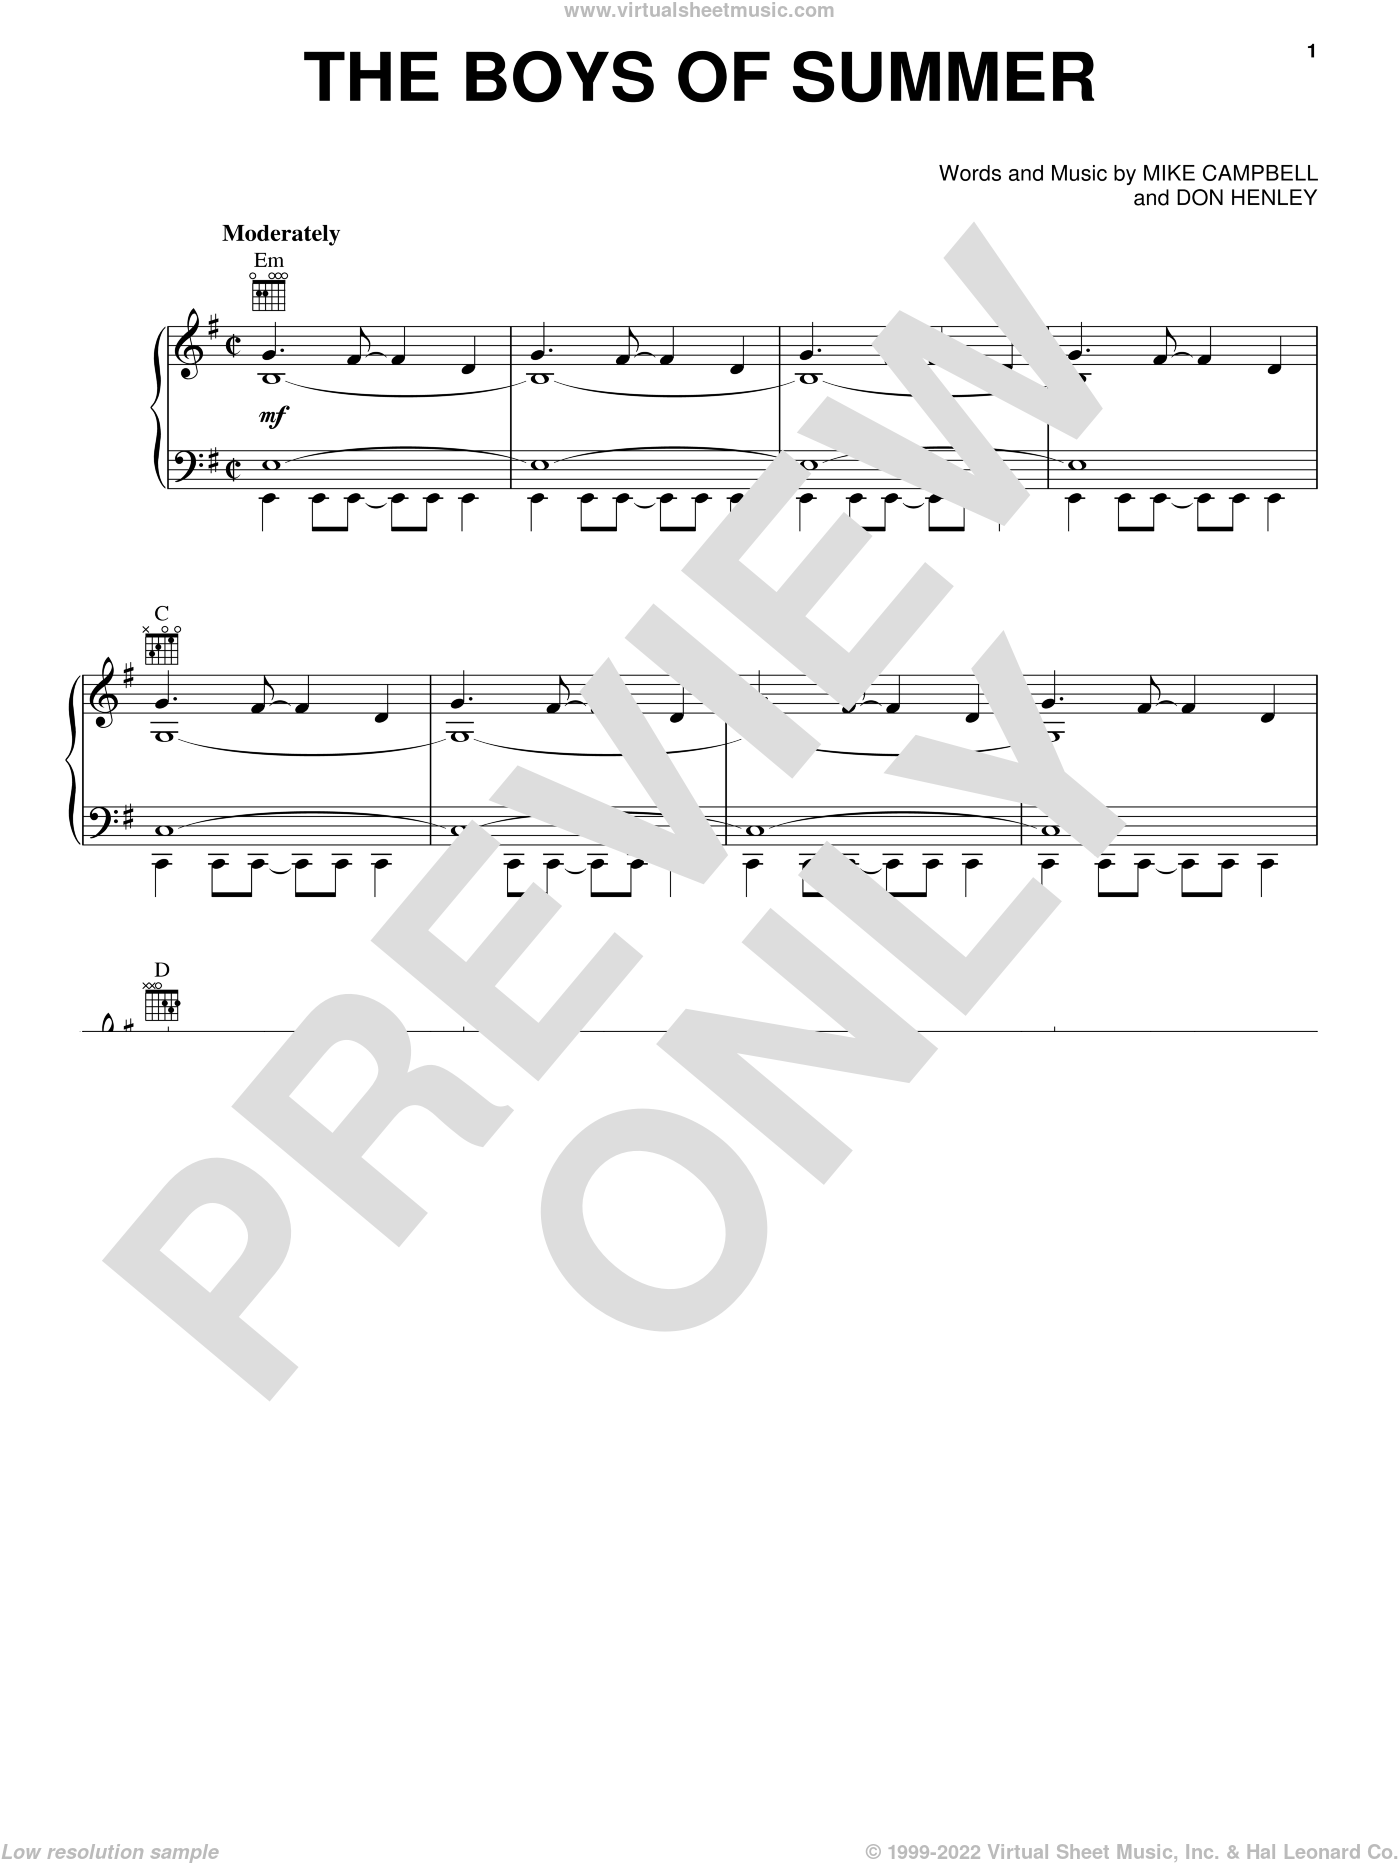 The Boys Of Summer sheet music for voice, piano or guitar by Don Henley and Mike Campbell, intermediate skill level